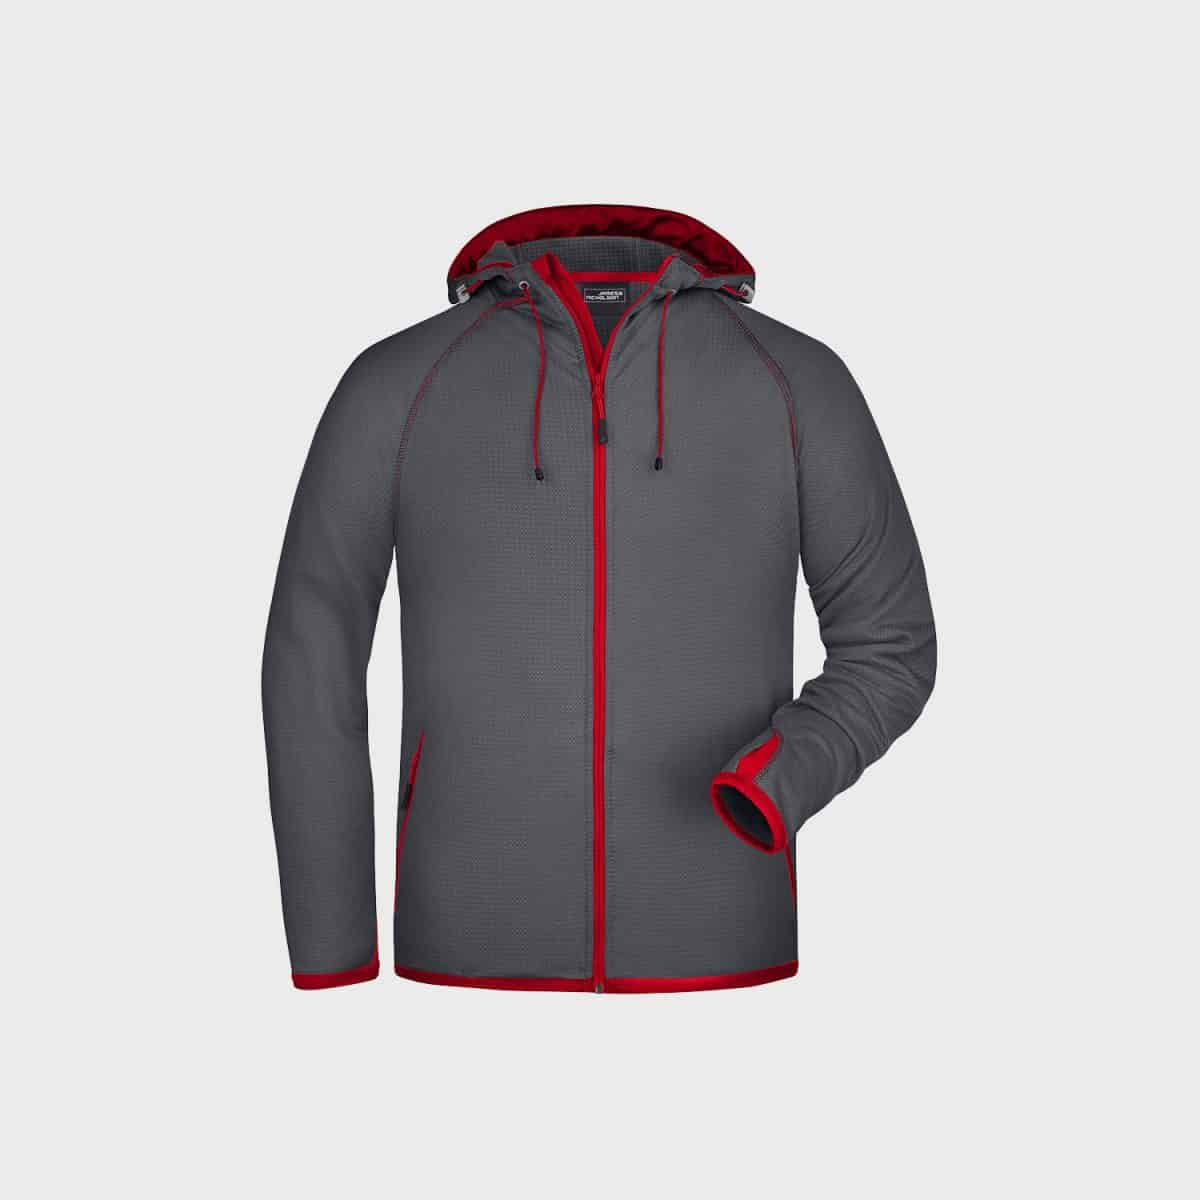 Daiber SweatJackets JN571 Carbon Red Side